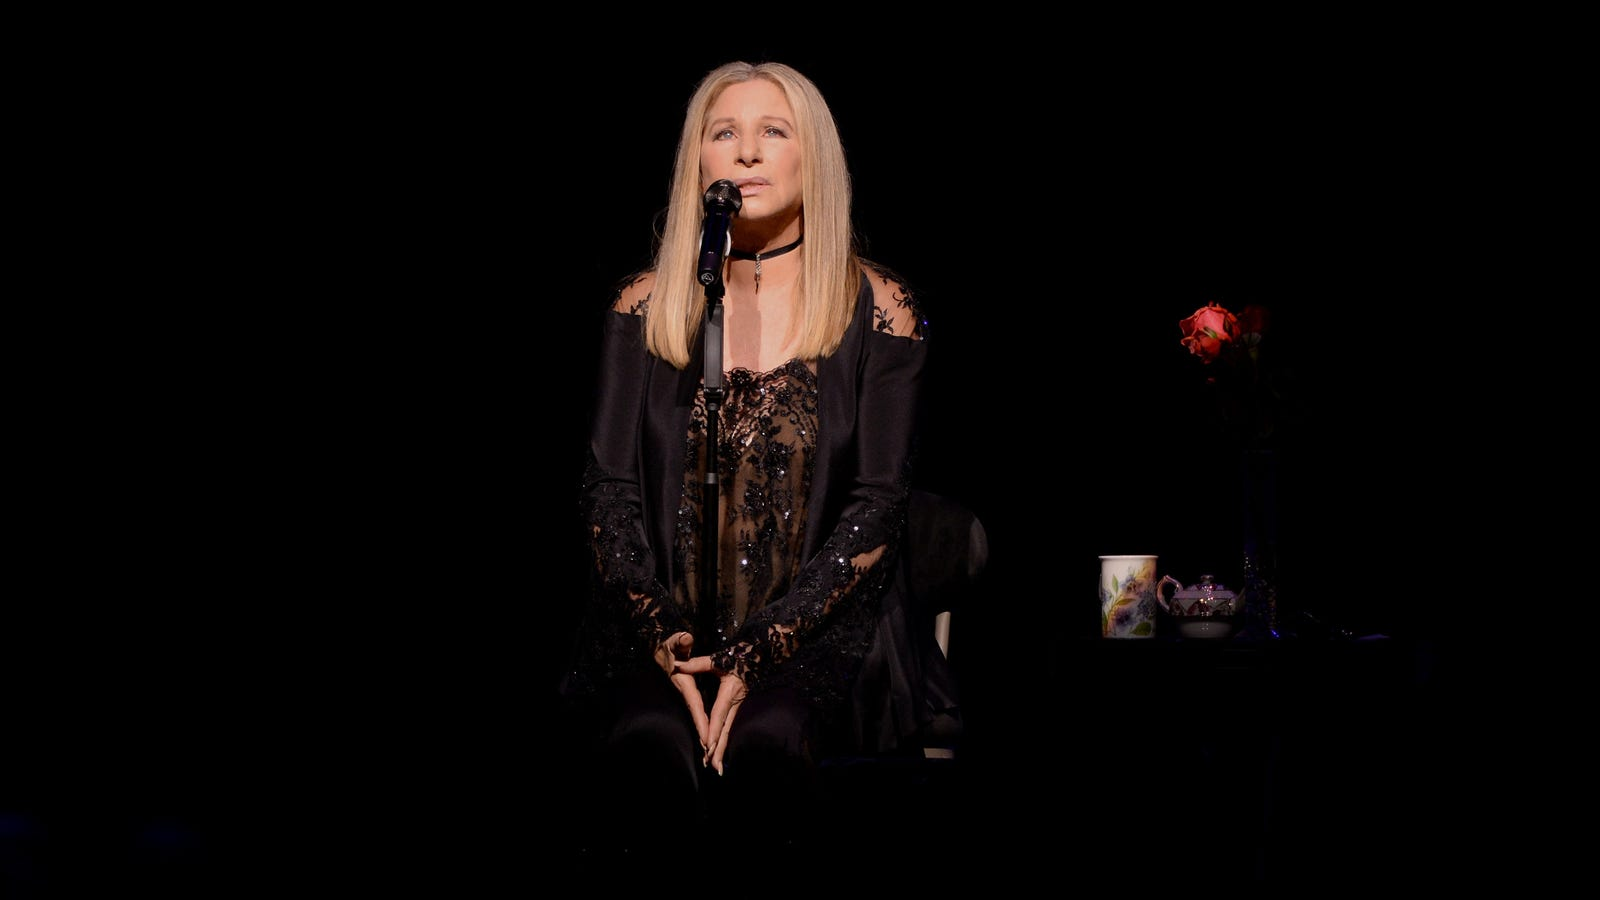 Jesus, these Barbra Streisand quotes about Michael Jackson's Leaving Neverland accusers are rough - The A.V. Club thumbnail